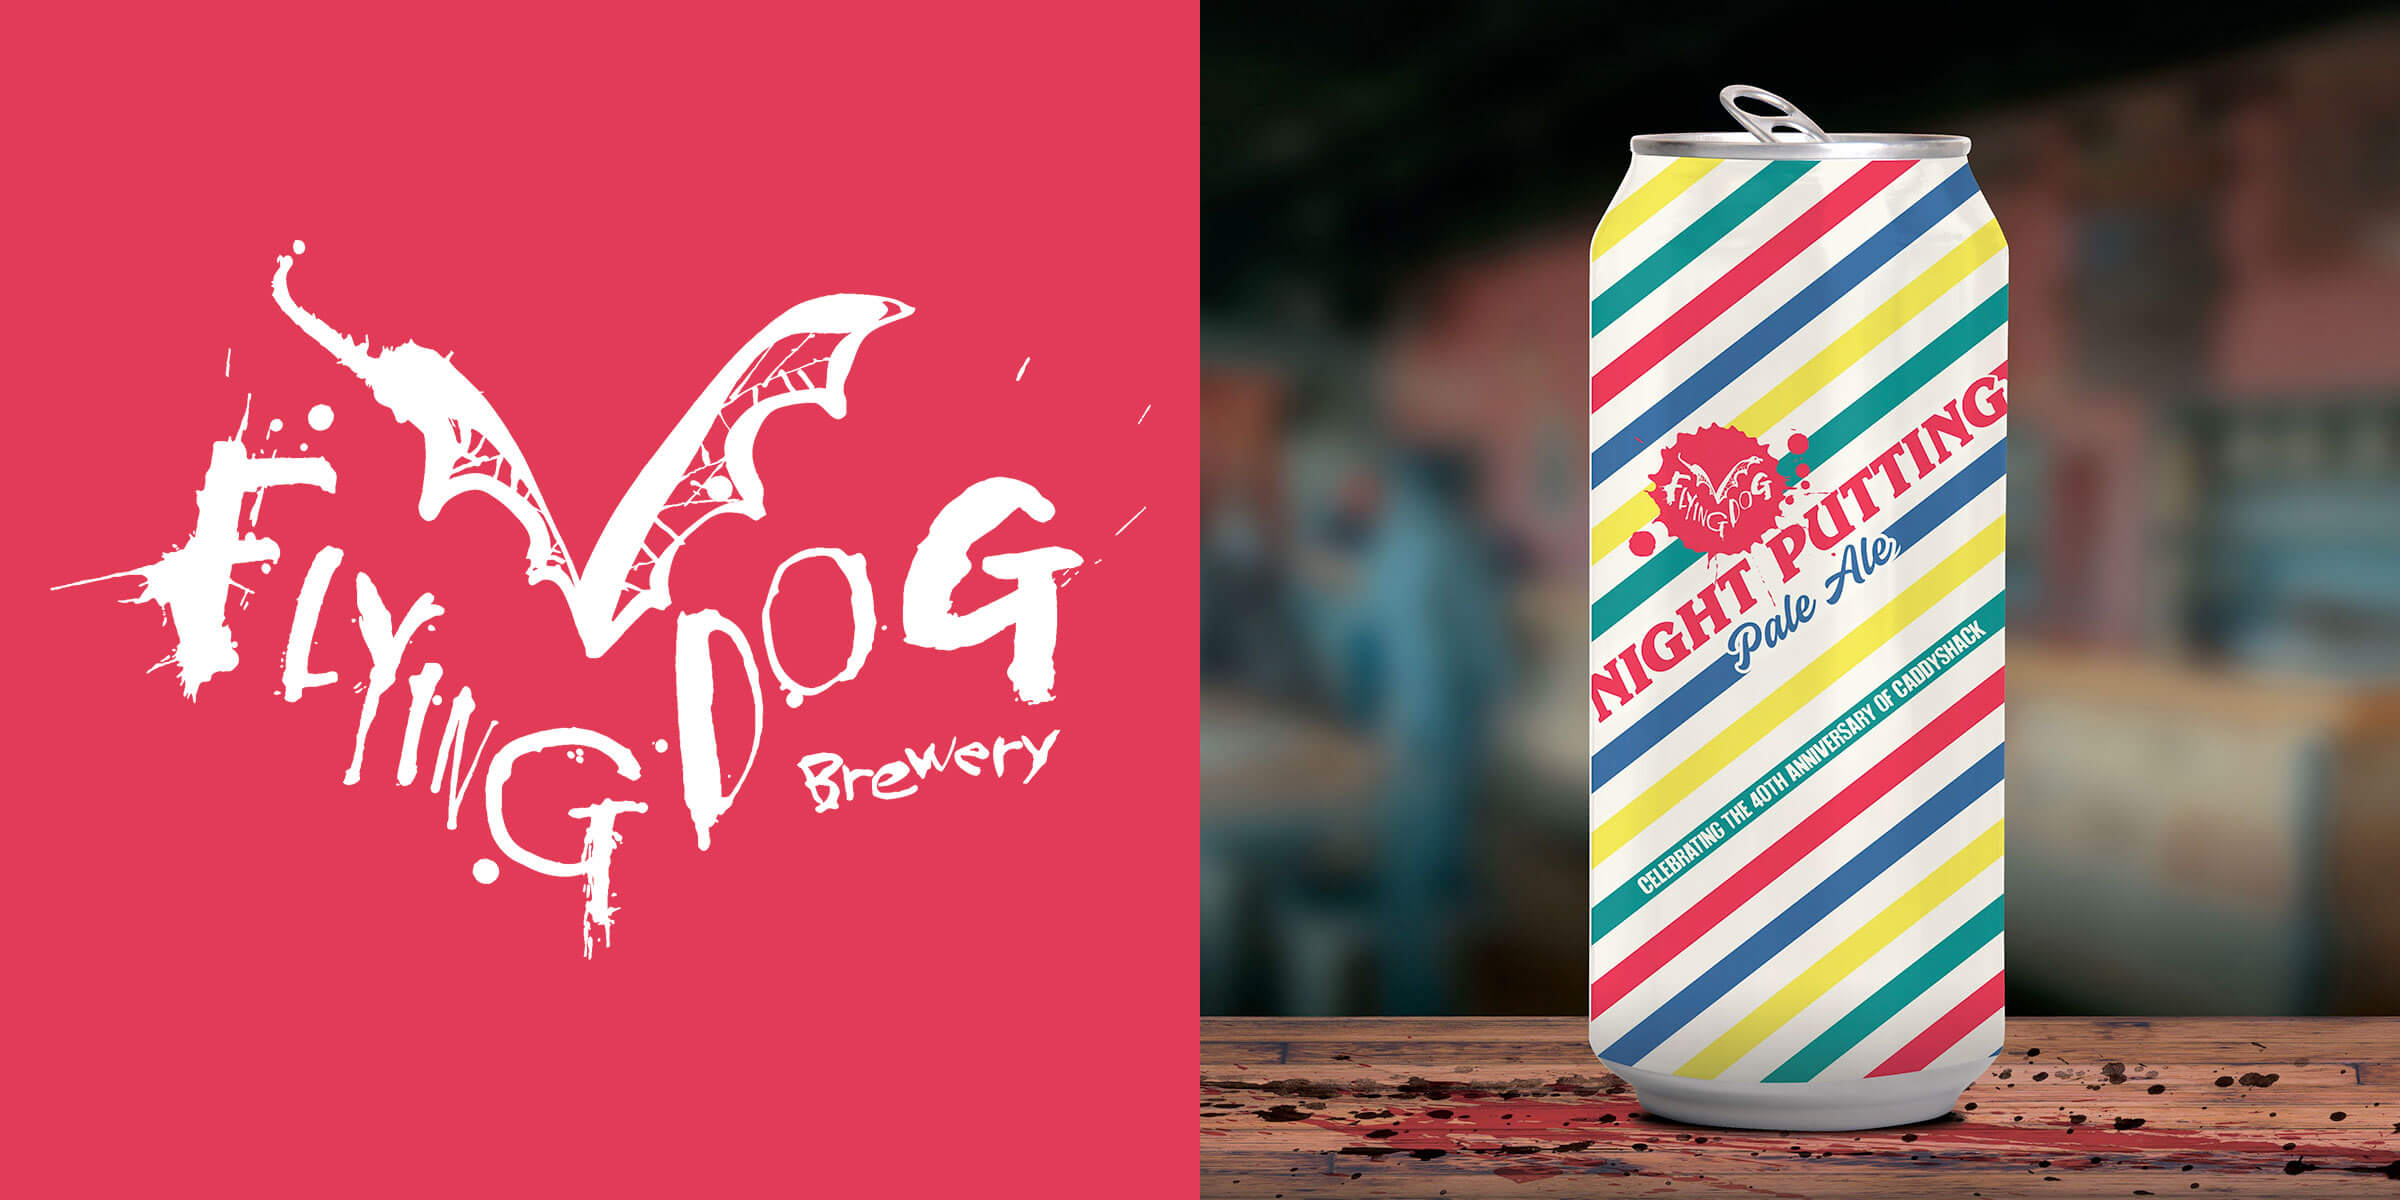 For the 40th anniversary of Caddyshack, the greatest golf movie ever, Flying Dog Brewery has created the best beer to accompany the game, Night Putting.